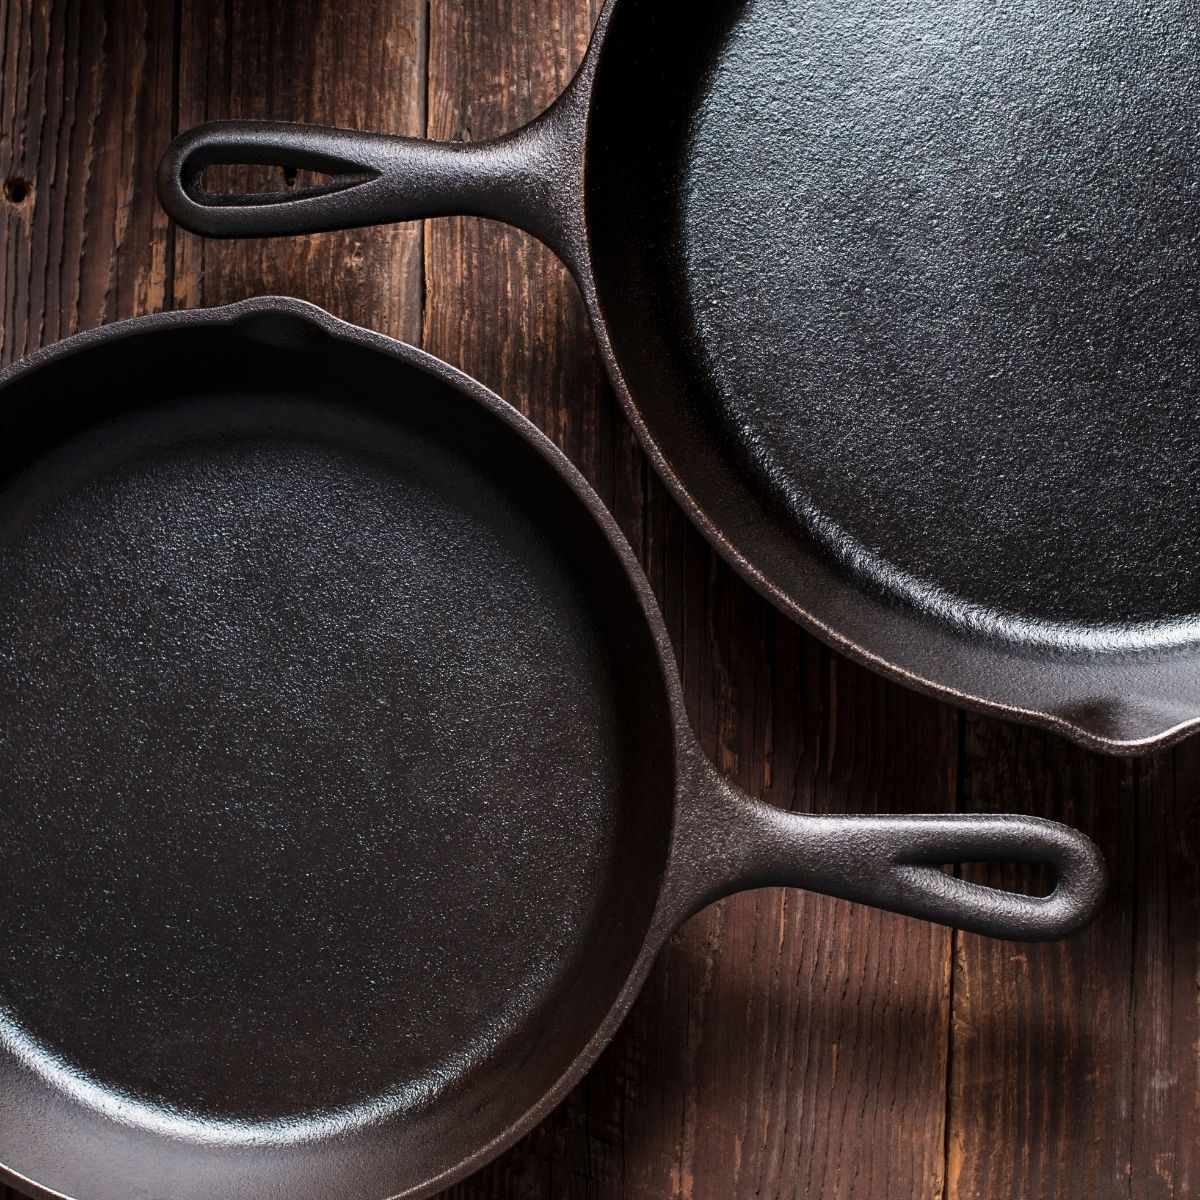 Two cast iron skillets on wooden background